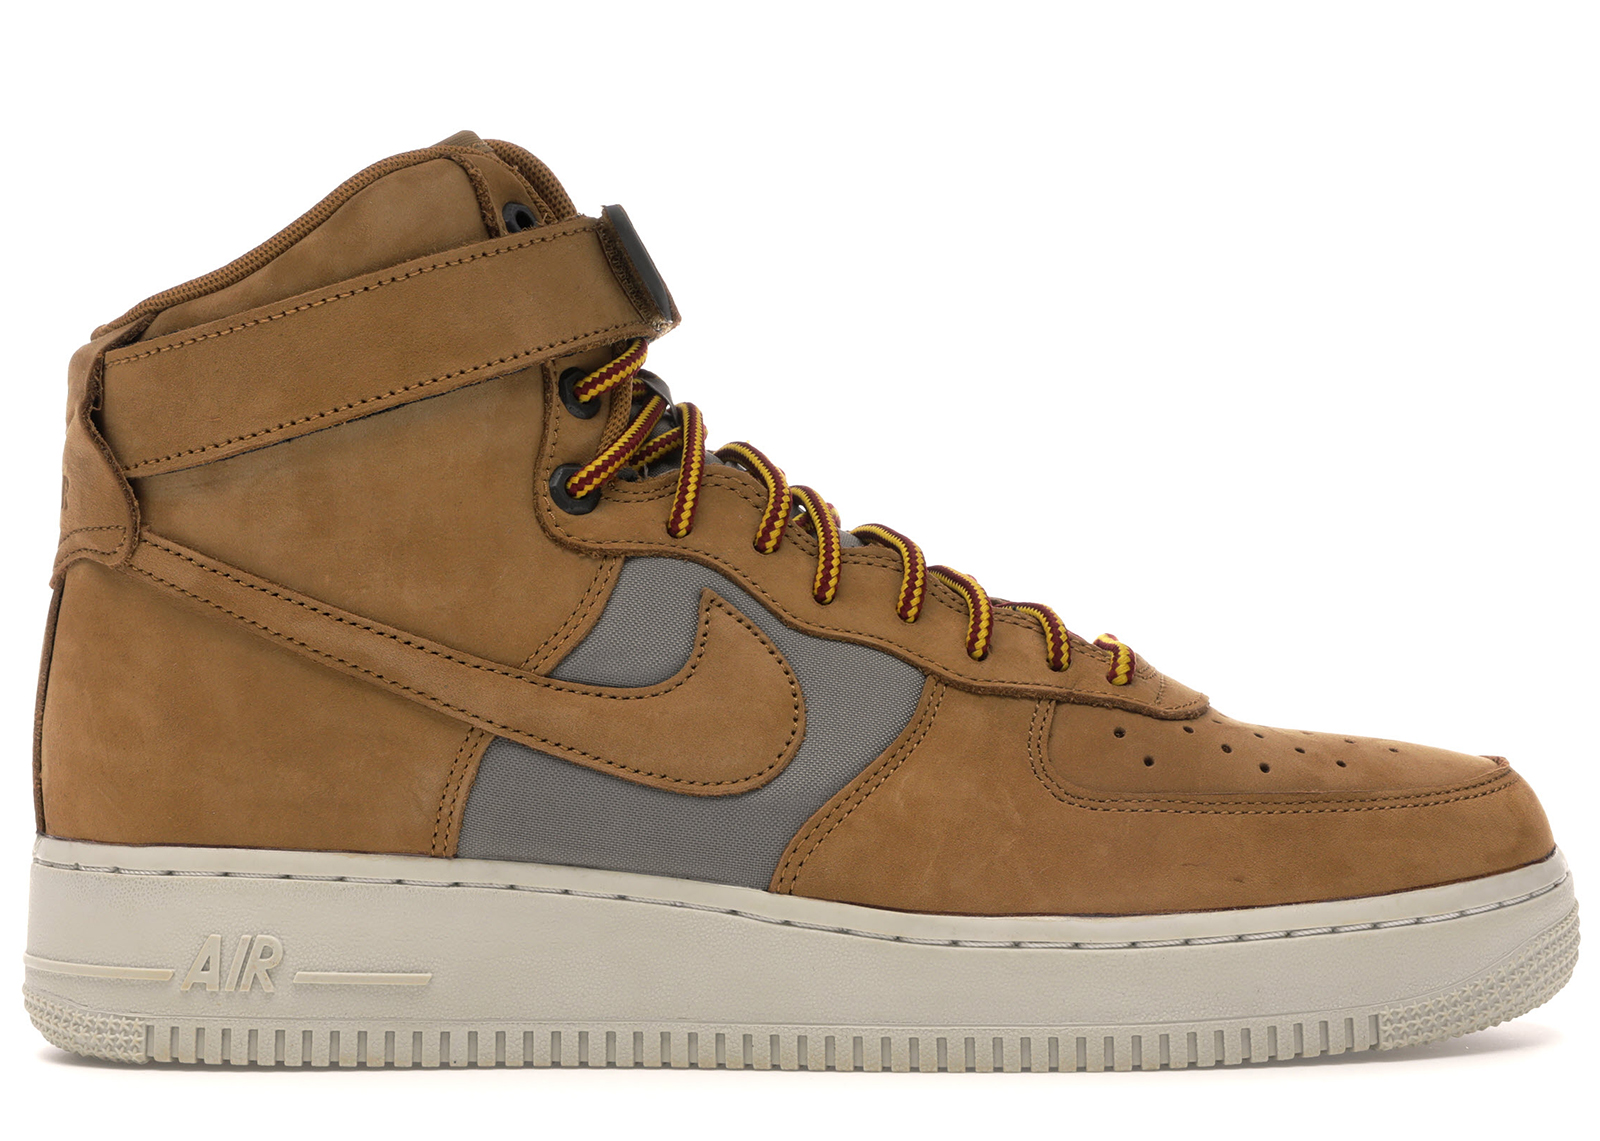 Wheat Air Beef 1 And Force High Premier Pack Broccoli dBrxoCWe